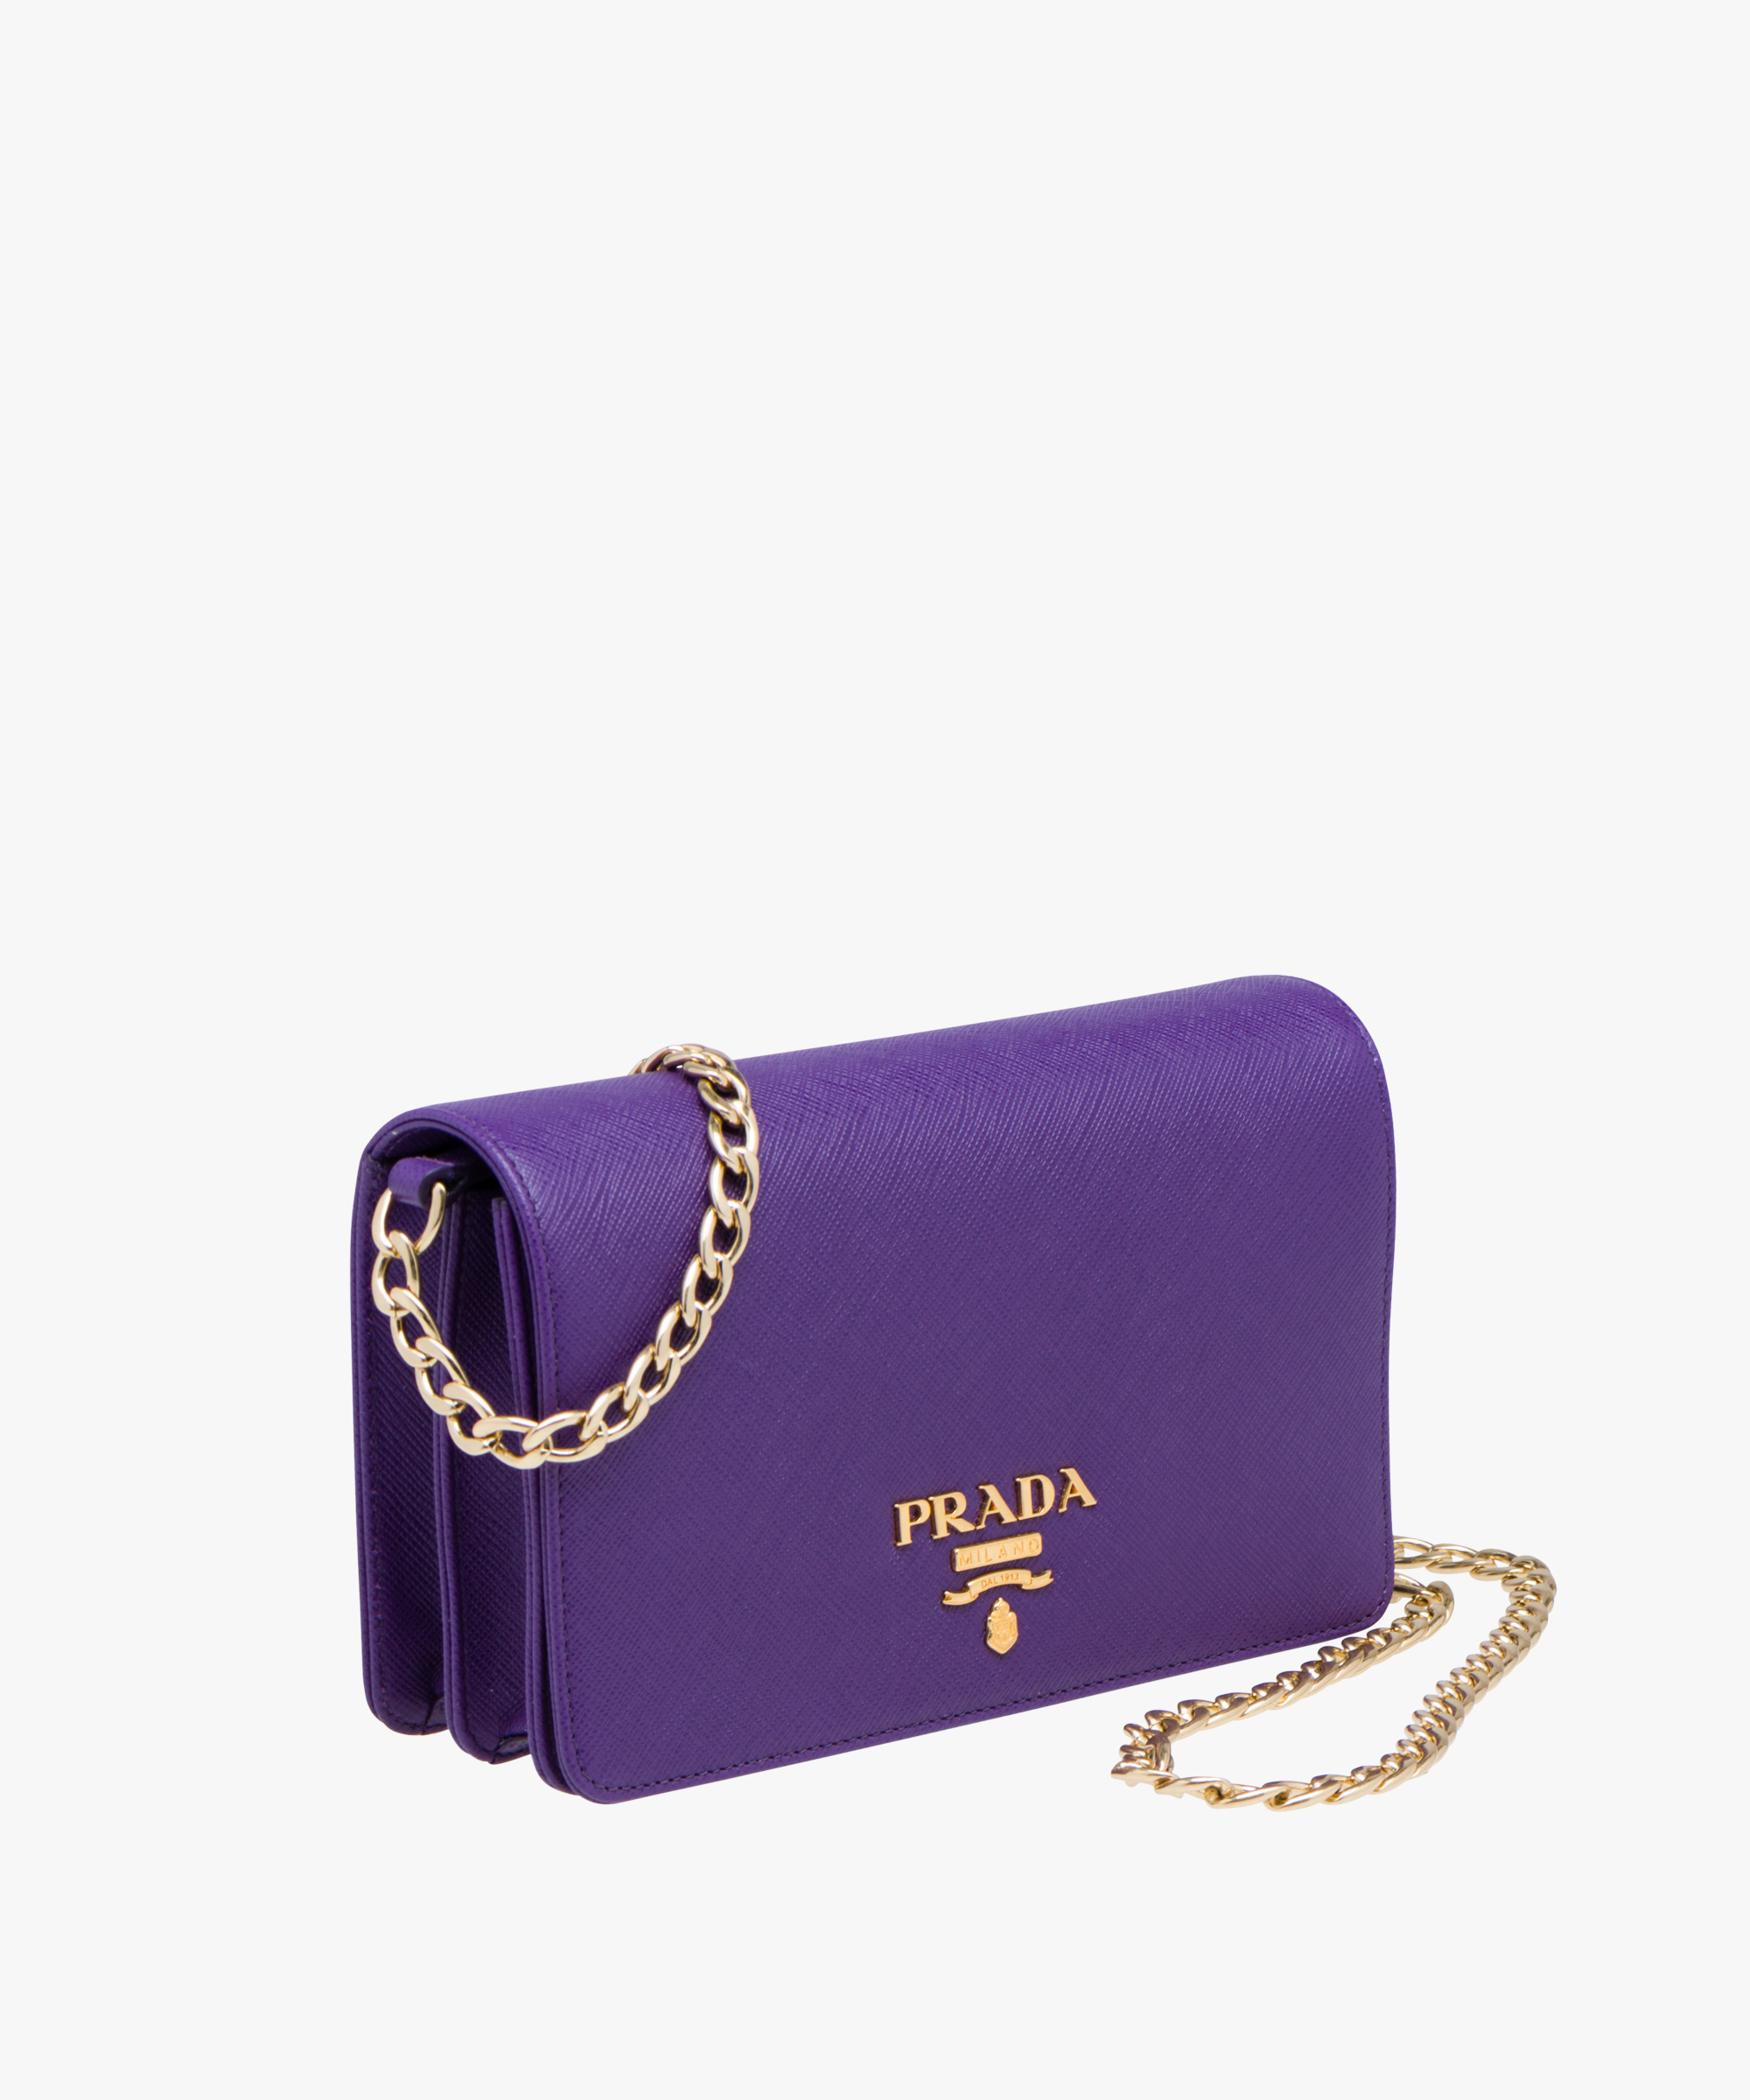 e0cc076a96 ... Leather Shoulder Bag Prada VIOLET ...